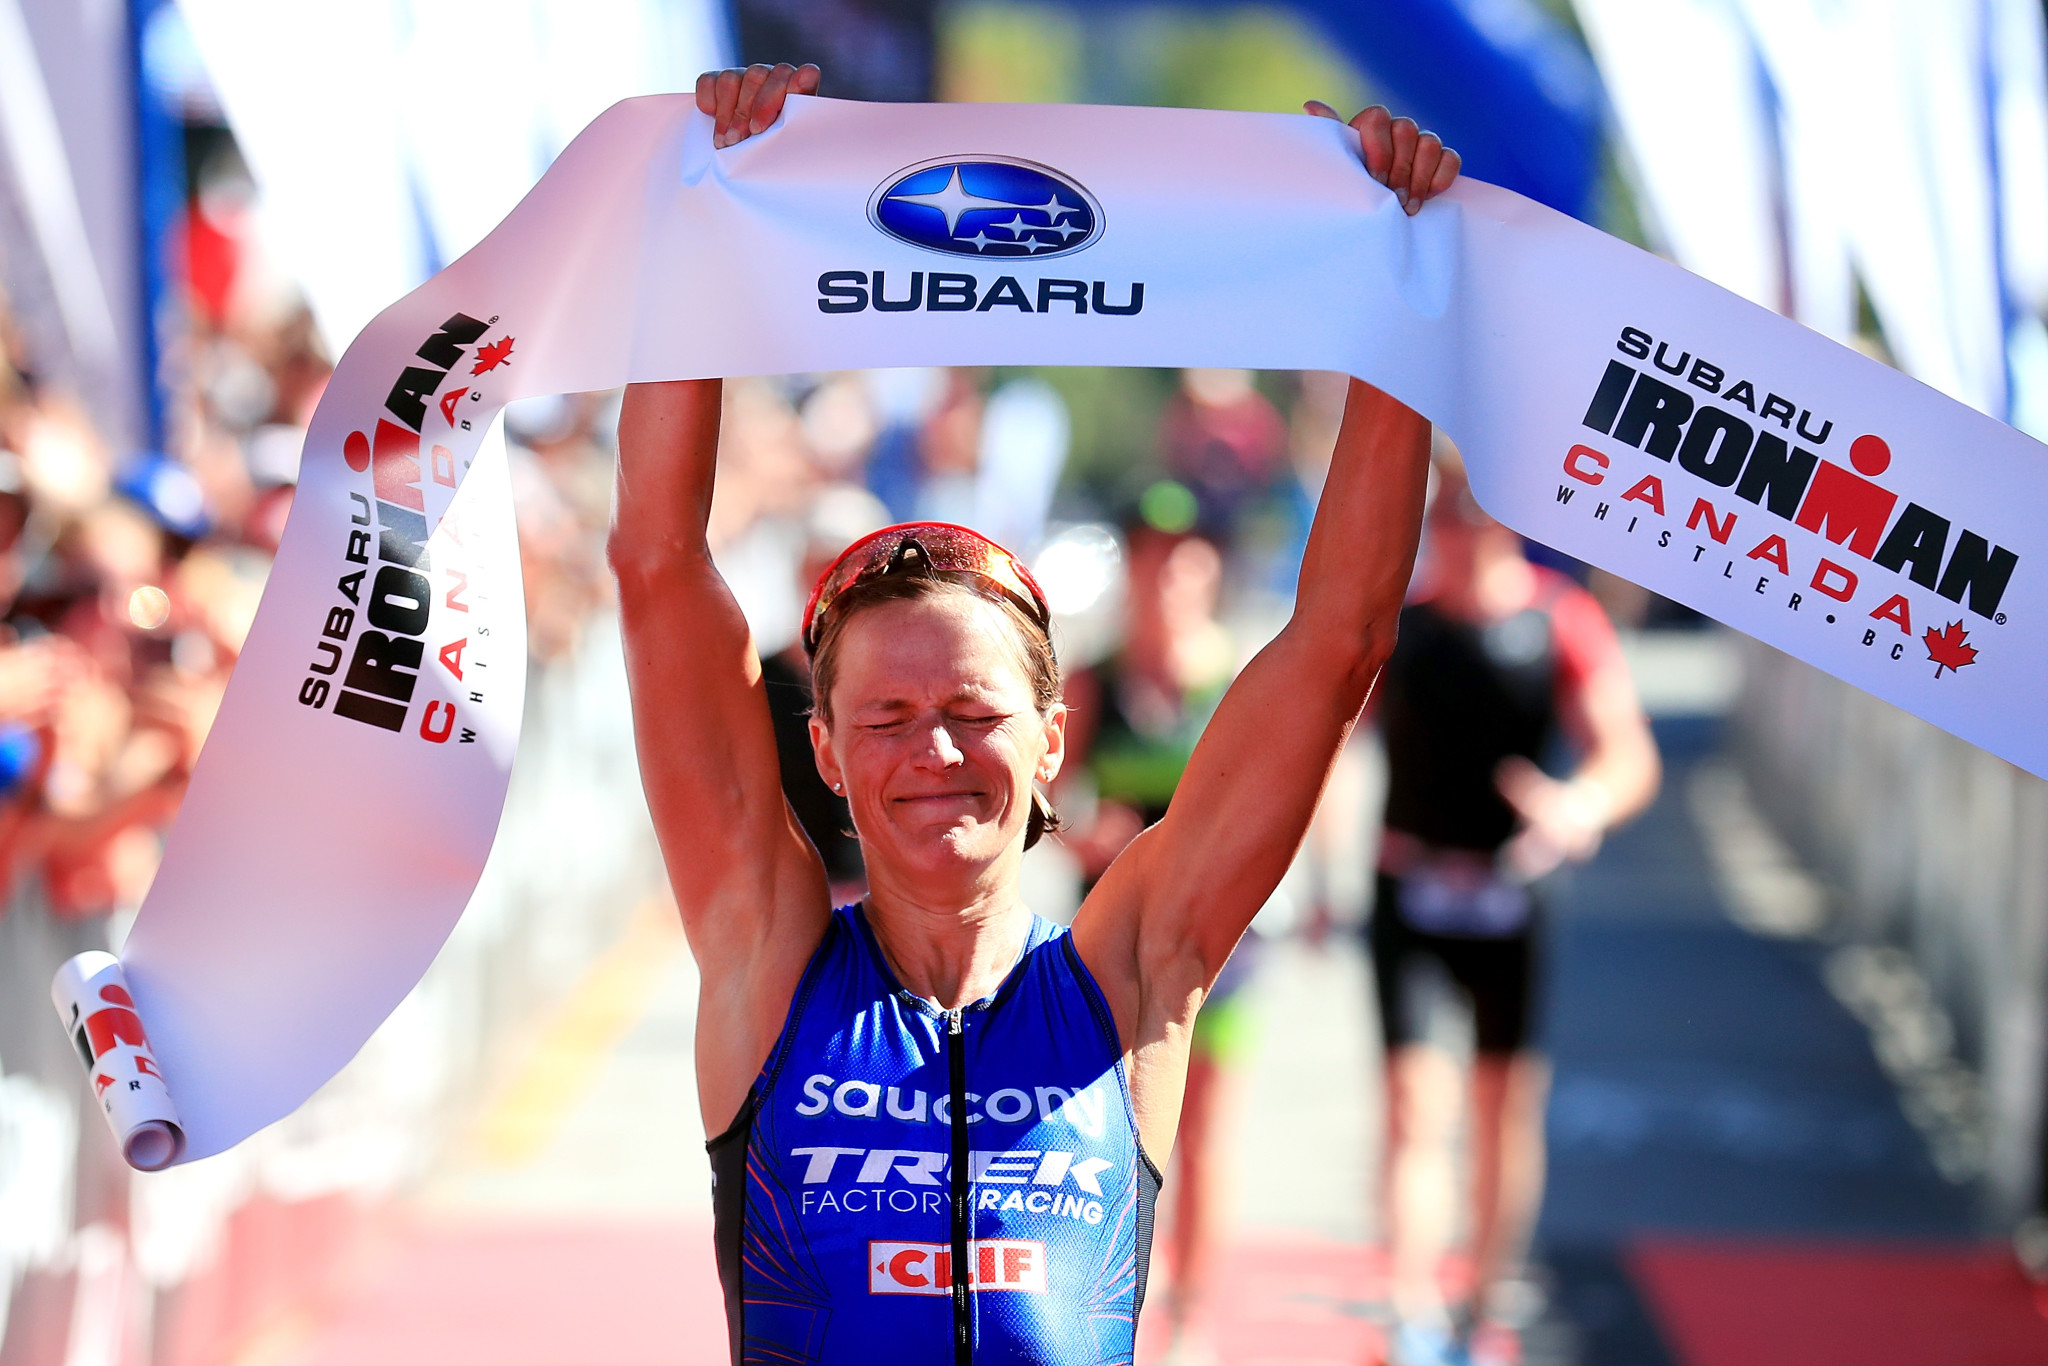 WHISTLER, BC - JULY 30:  Linsey Corbin of the United States celebrates after crossing the finish line to win the Pro Women's Division in the Subaru Ironman Canada triathlon on July 30, 2017 in Whistler, Canada.  (Photo by Tom Pennington/Getty Images for IRONMAN)